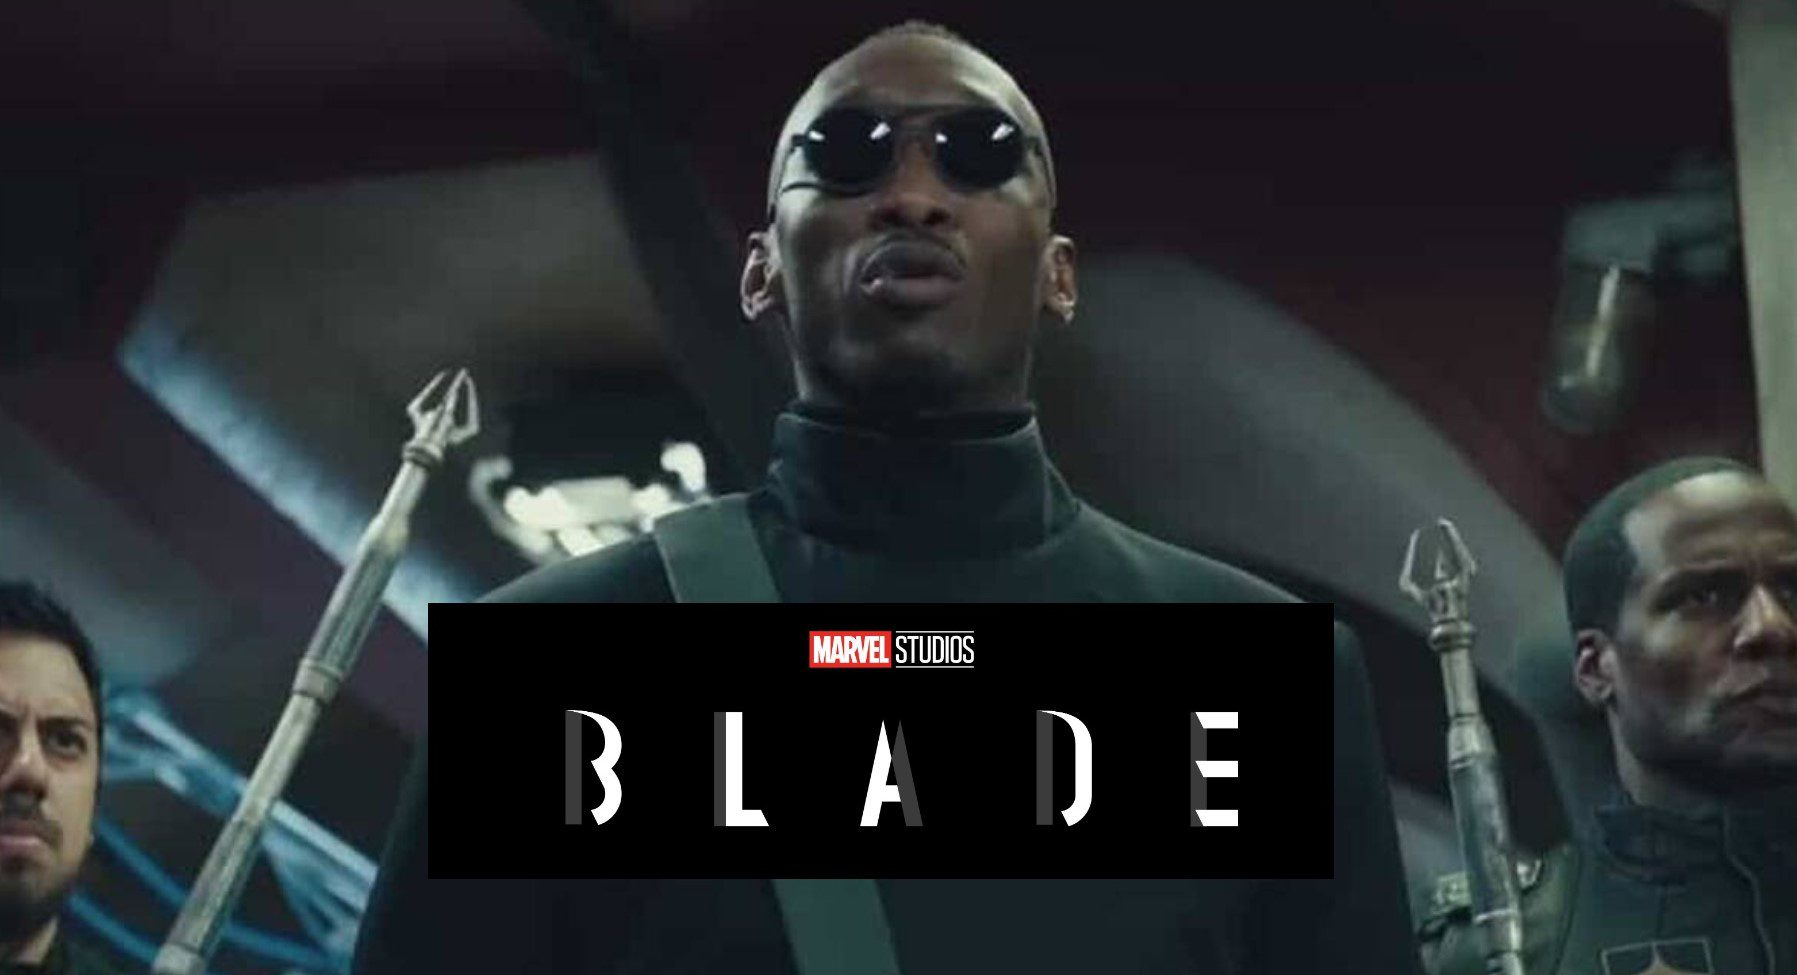 Blade is aiming to start filming later this year